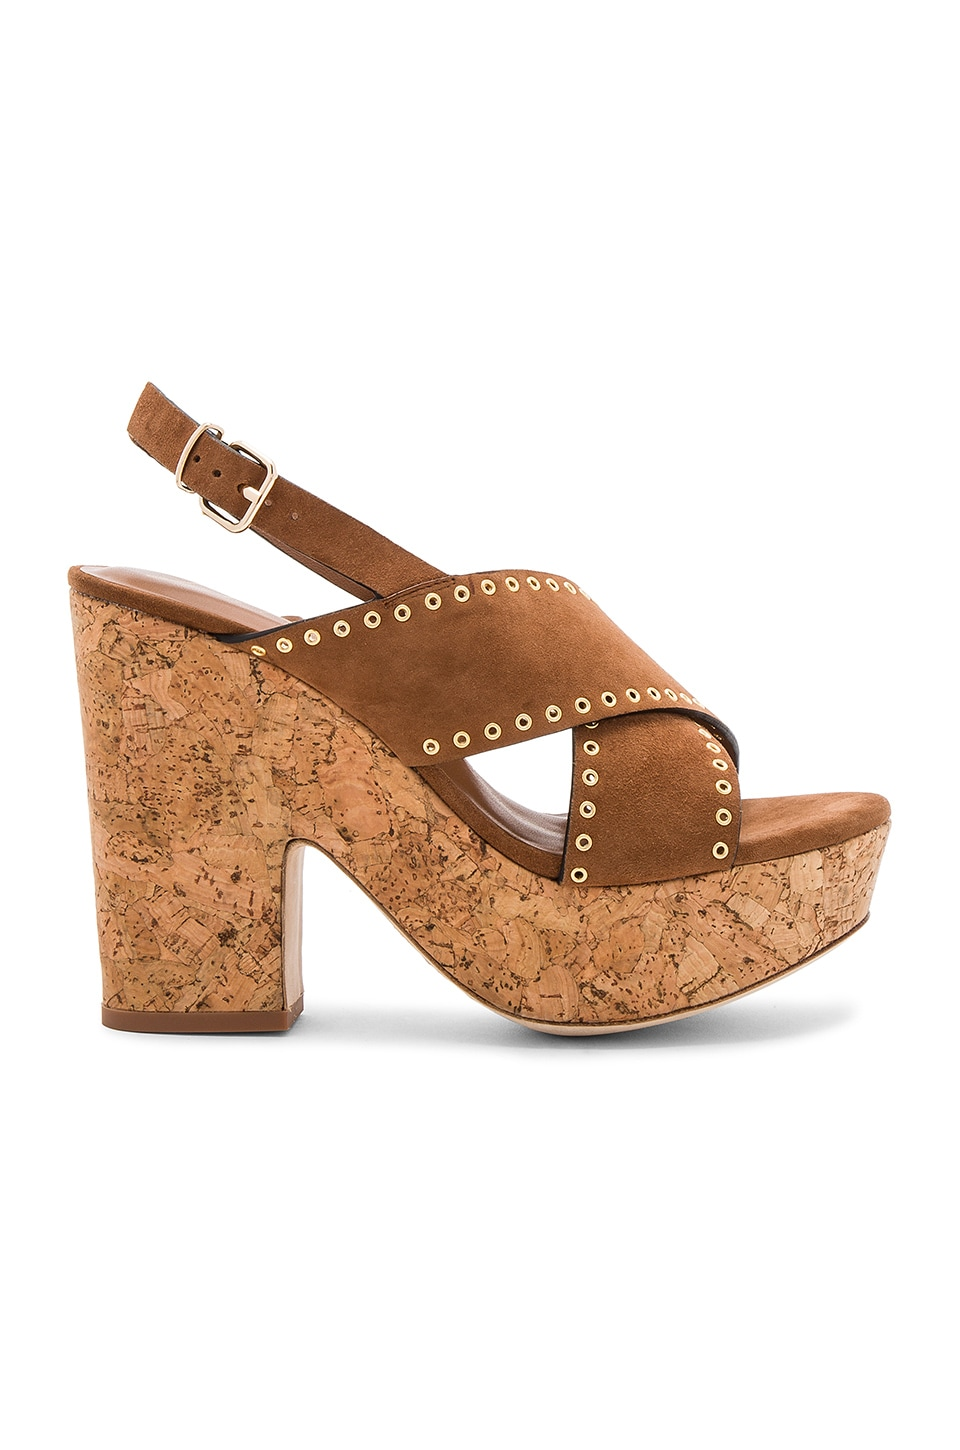 Lola Cruz Cross Front Platform in Tan